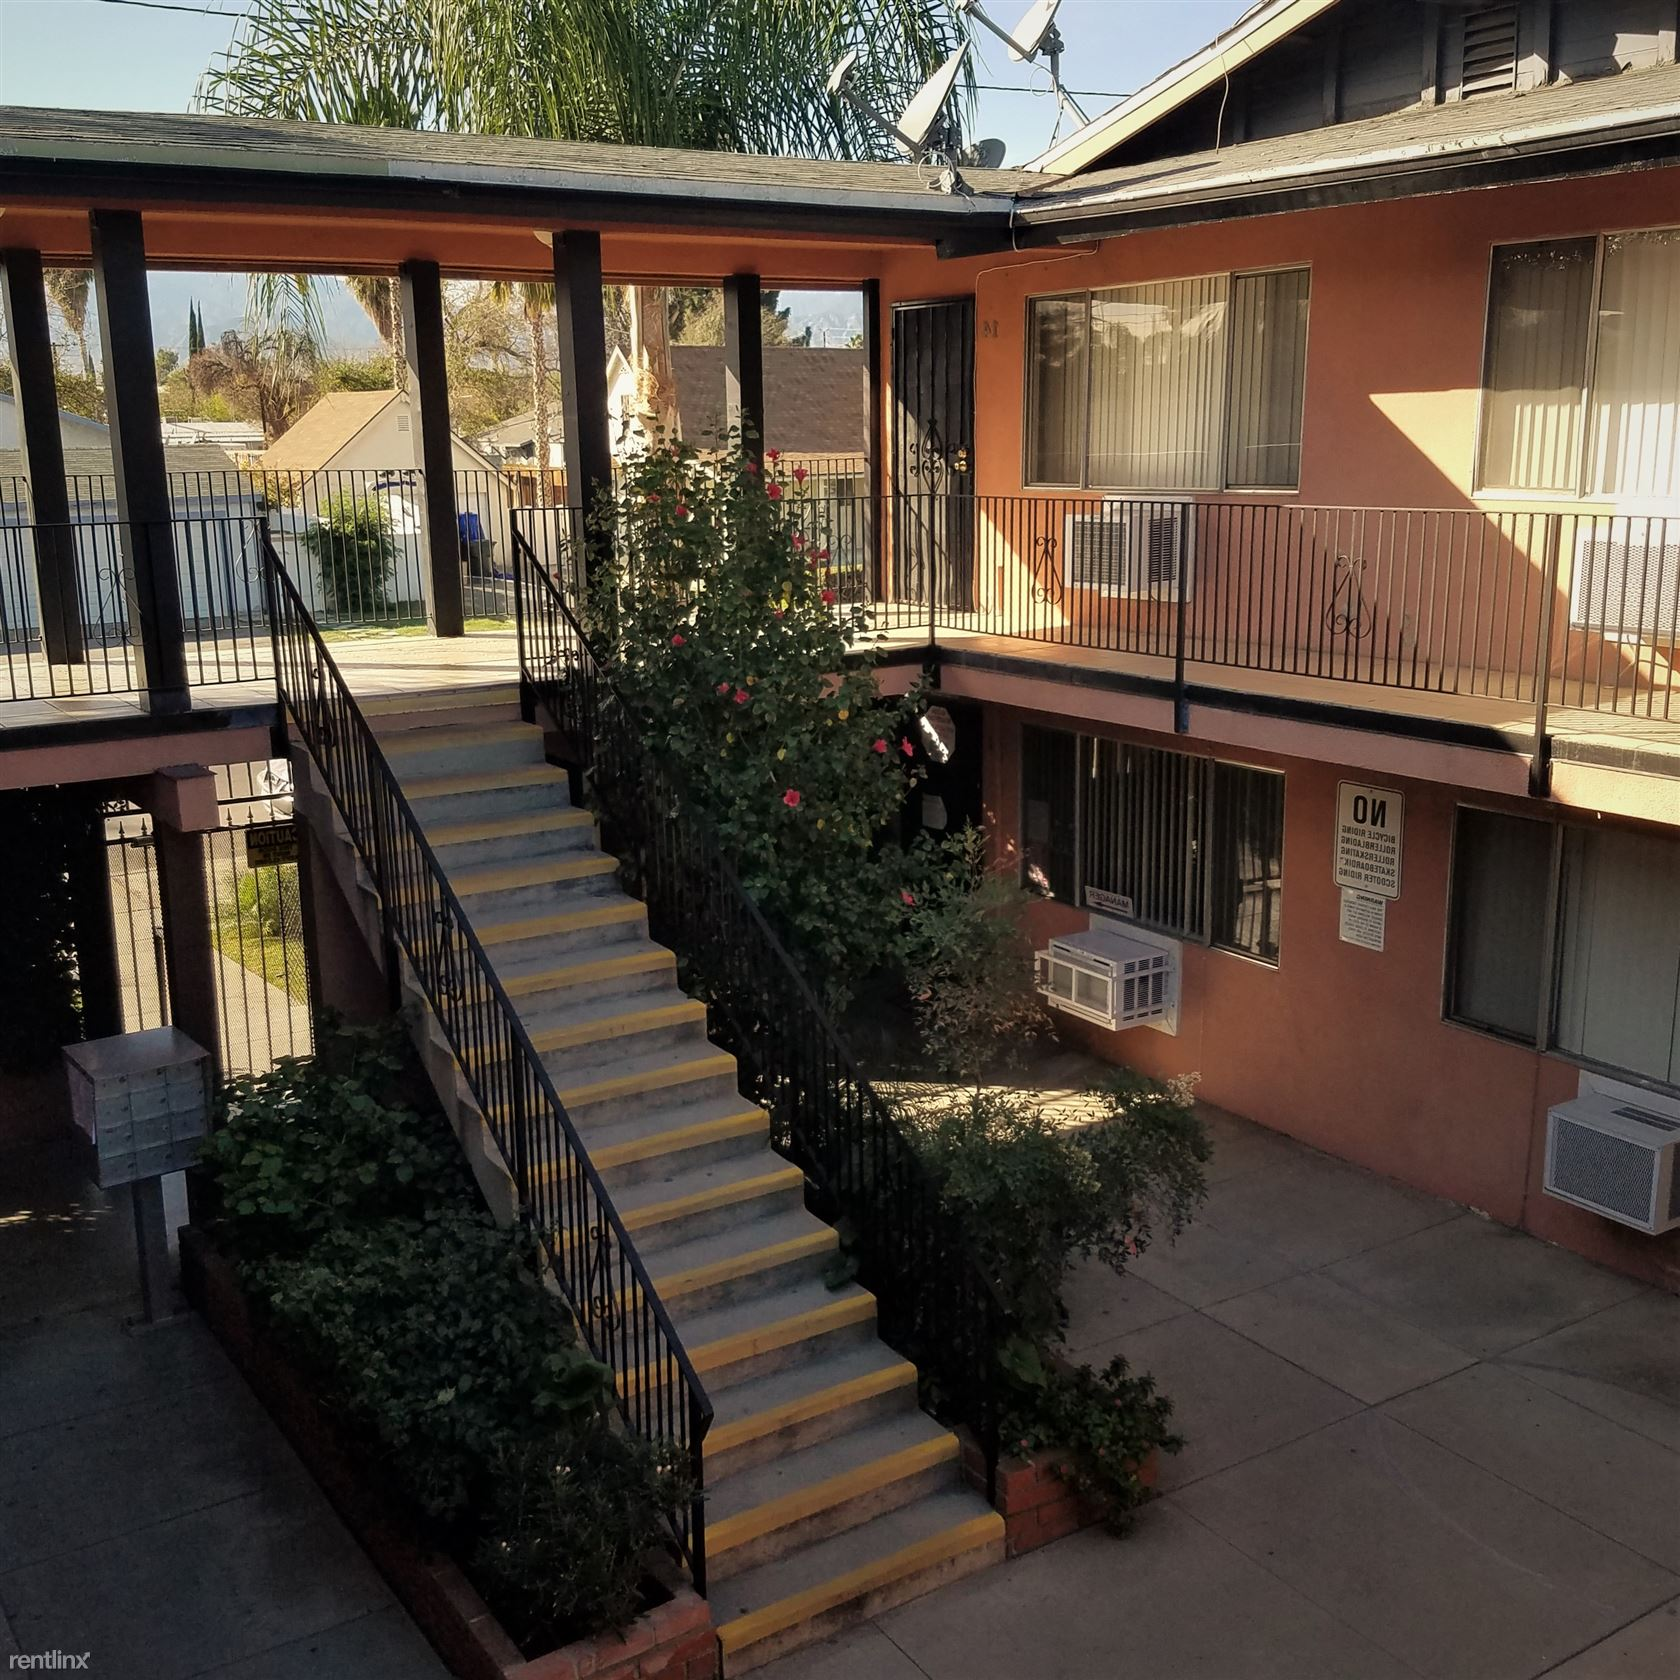 Near Apartments: Apartments Near Concorde Career College-San Bernardino